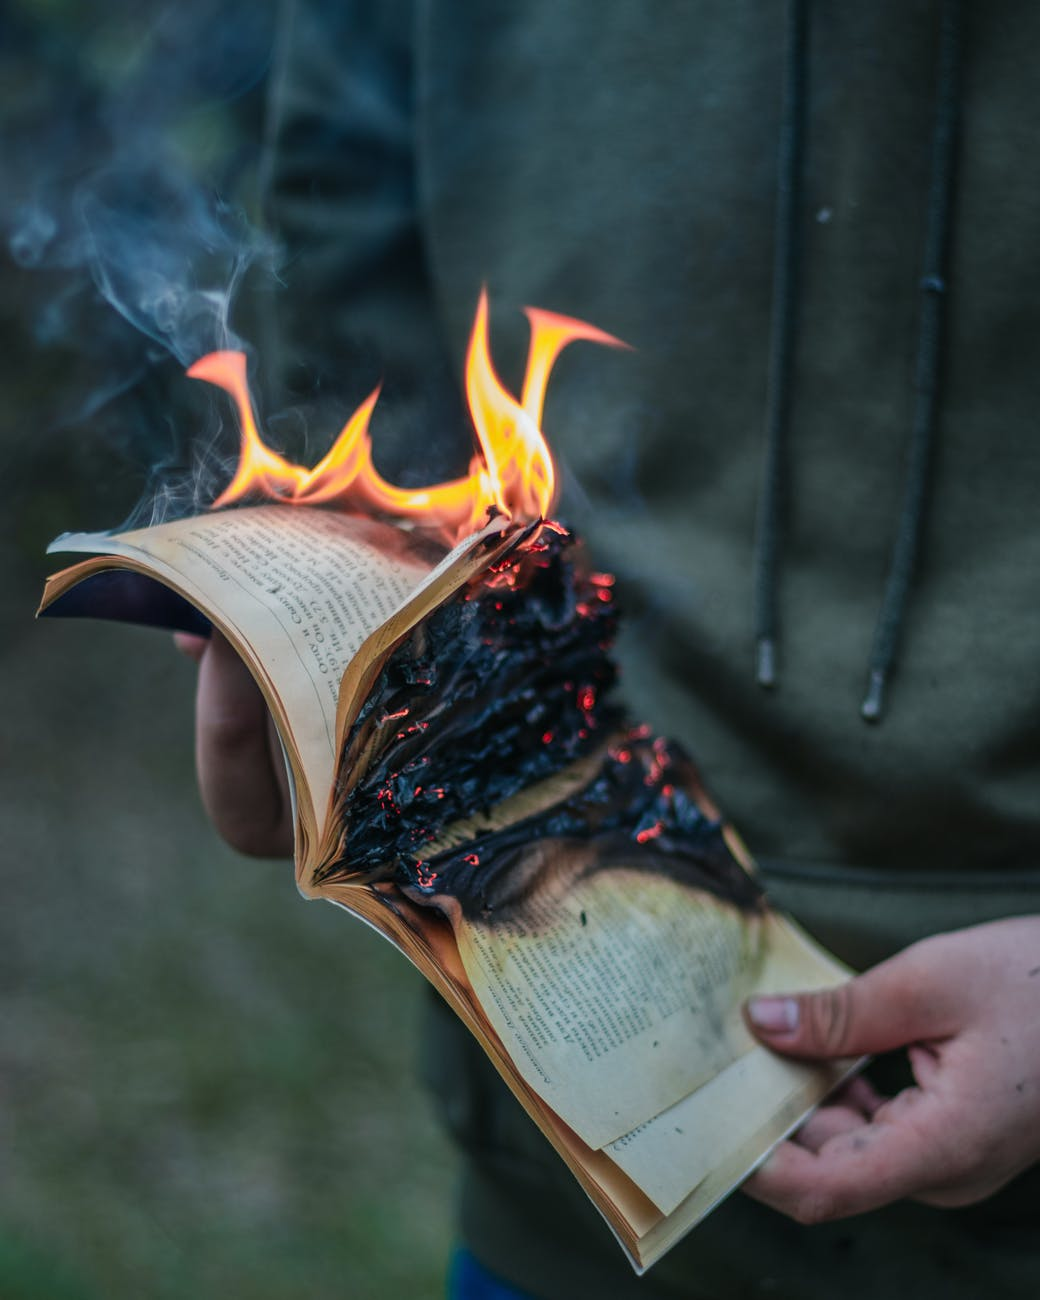 A photo of a person from the shoulders down holding a book that's on fire